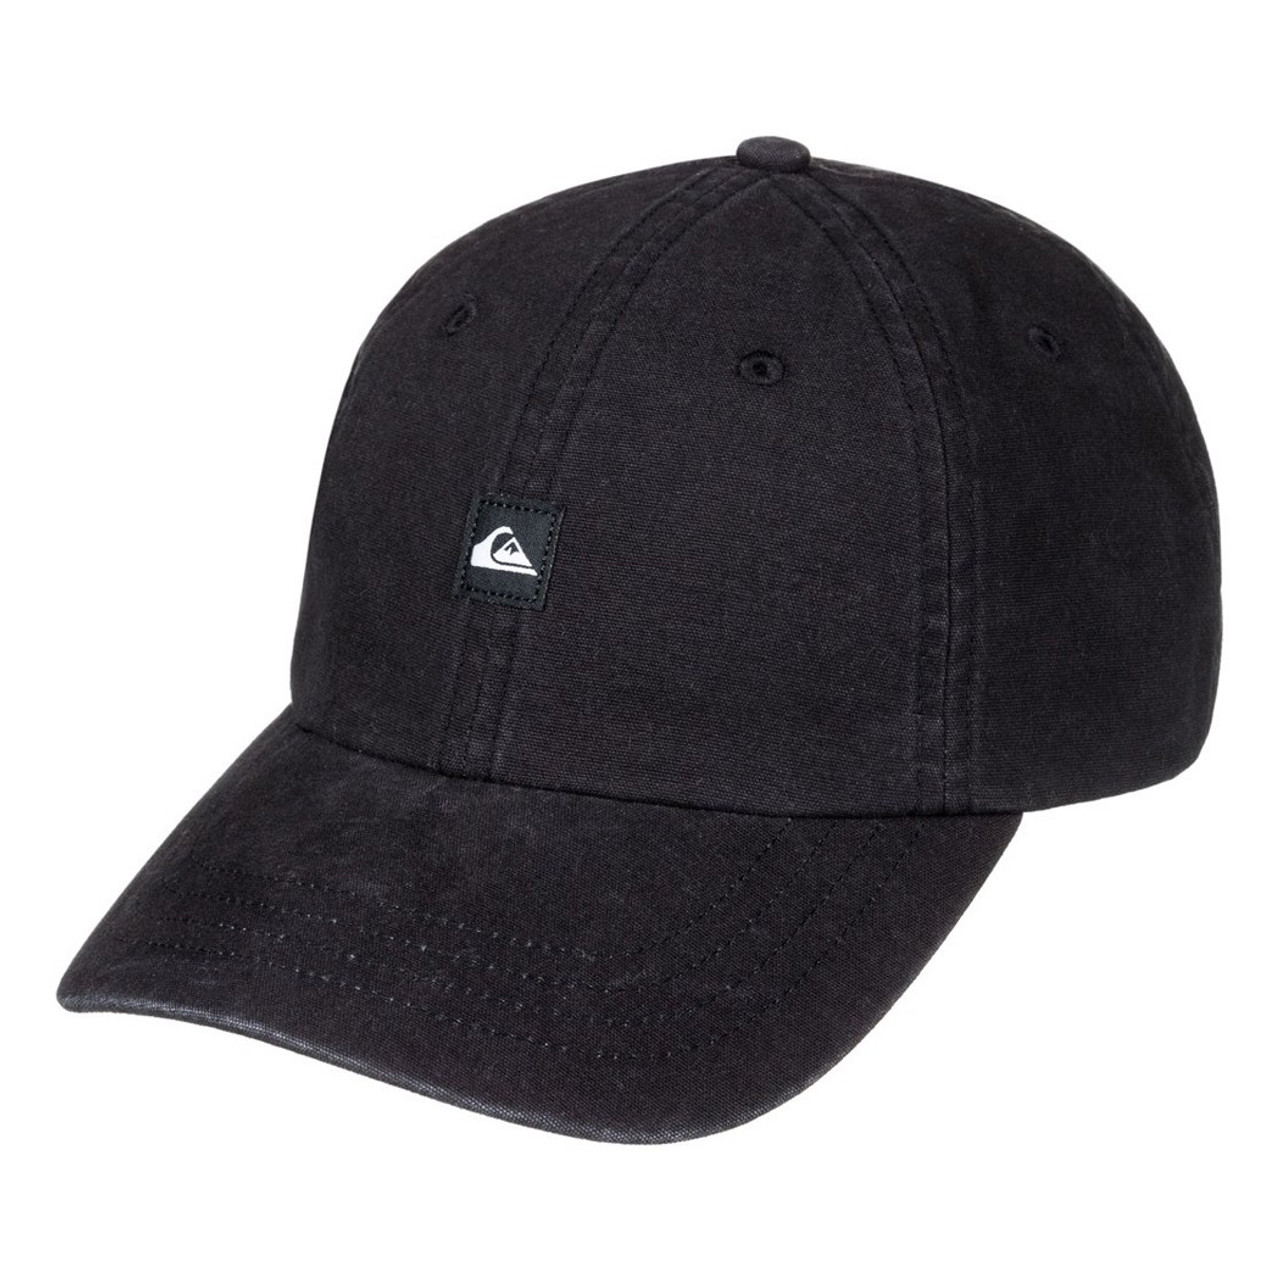 Quiksilver Hat - Fins Up - Tarmac - Surf and Dirt 04e82c3c48b